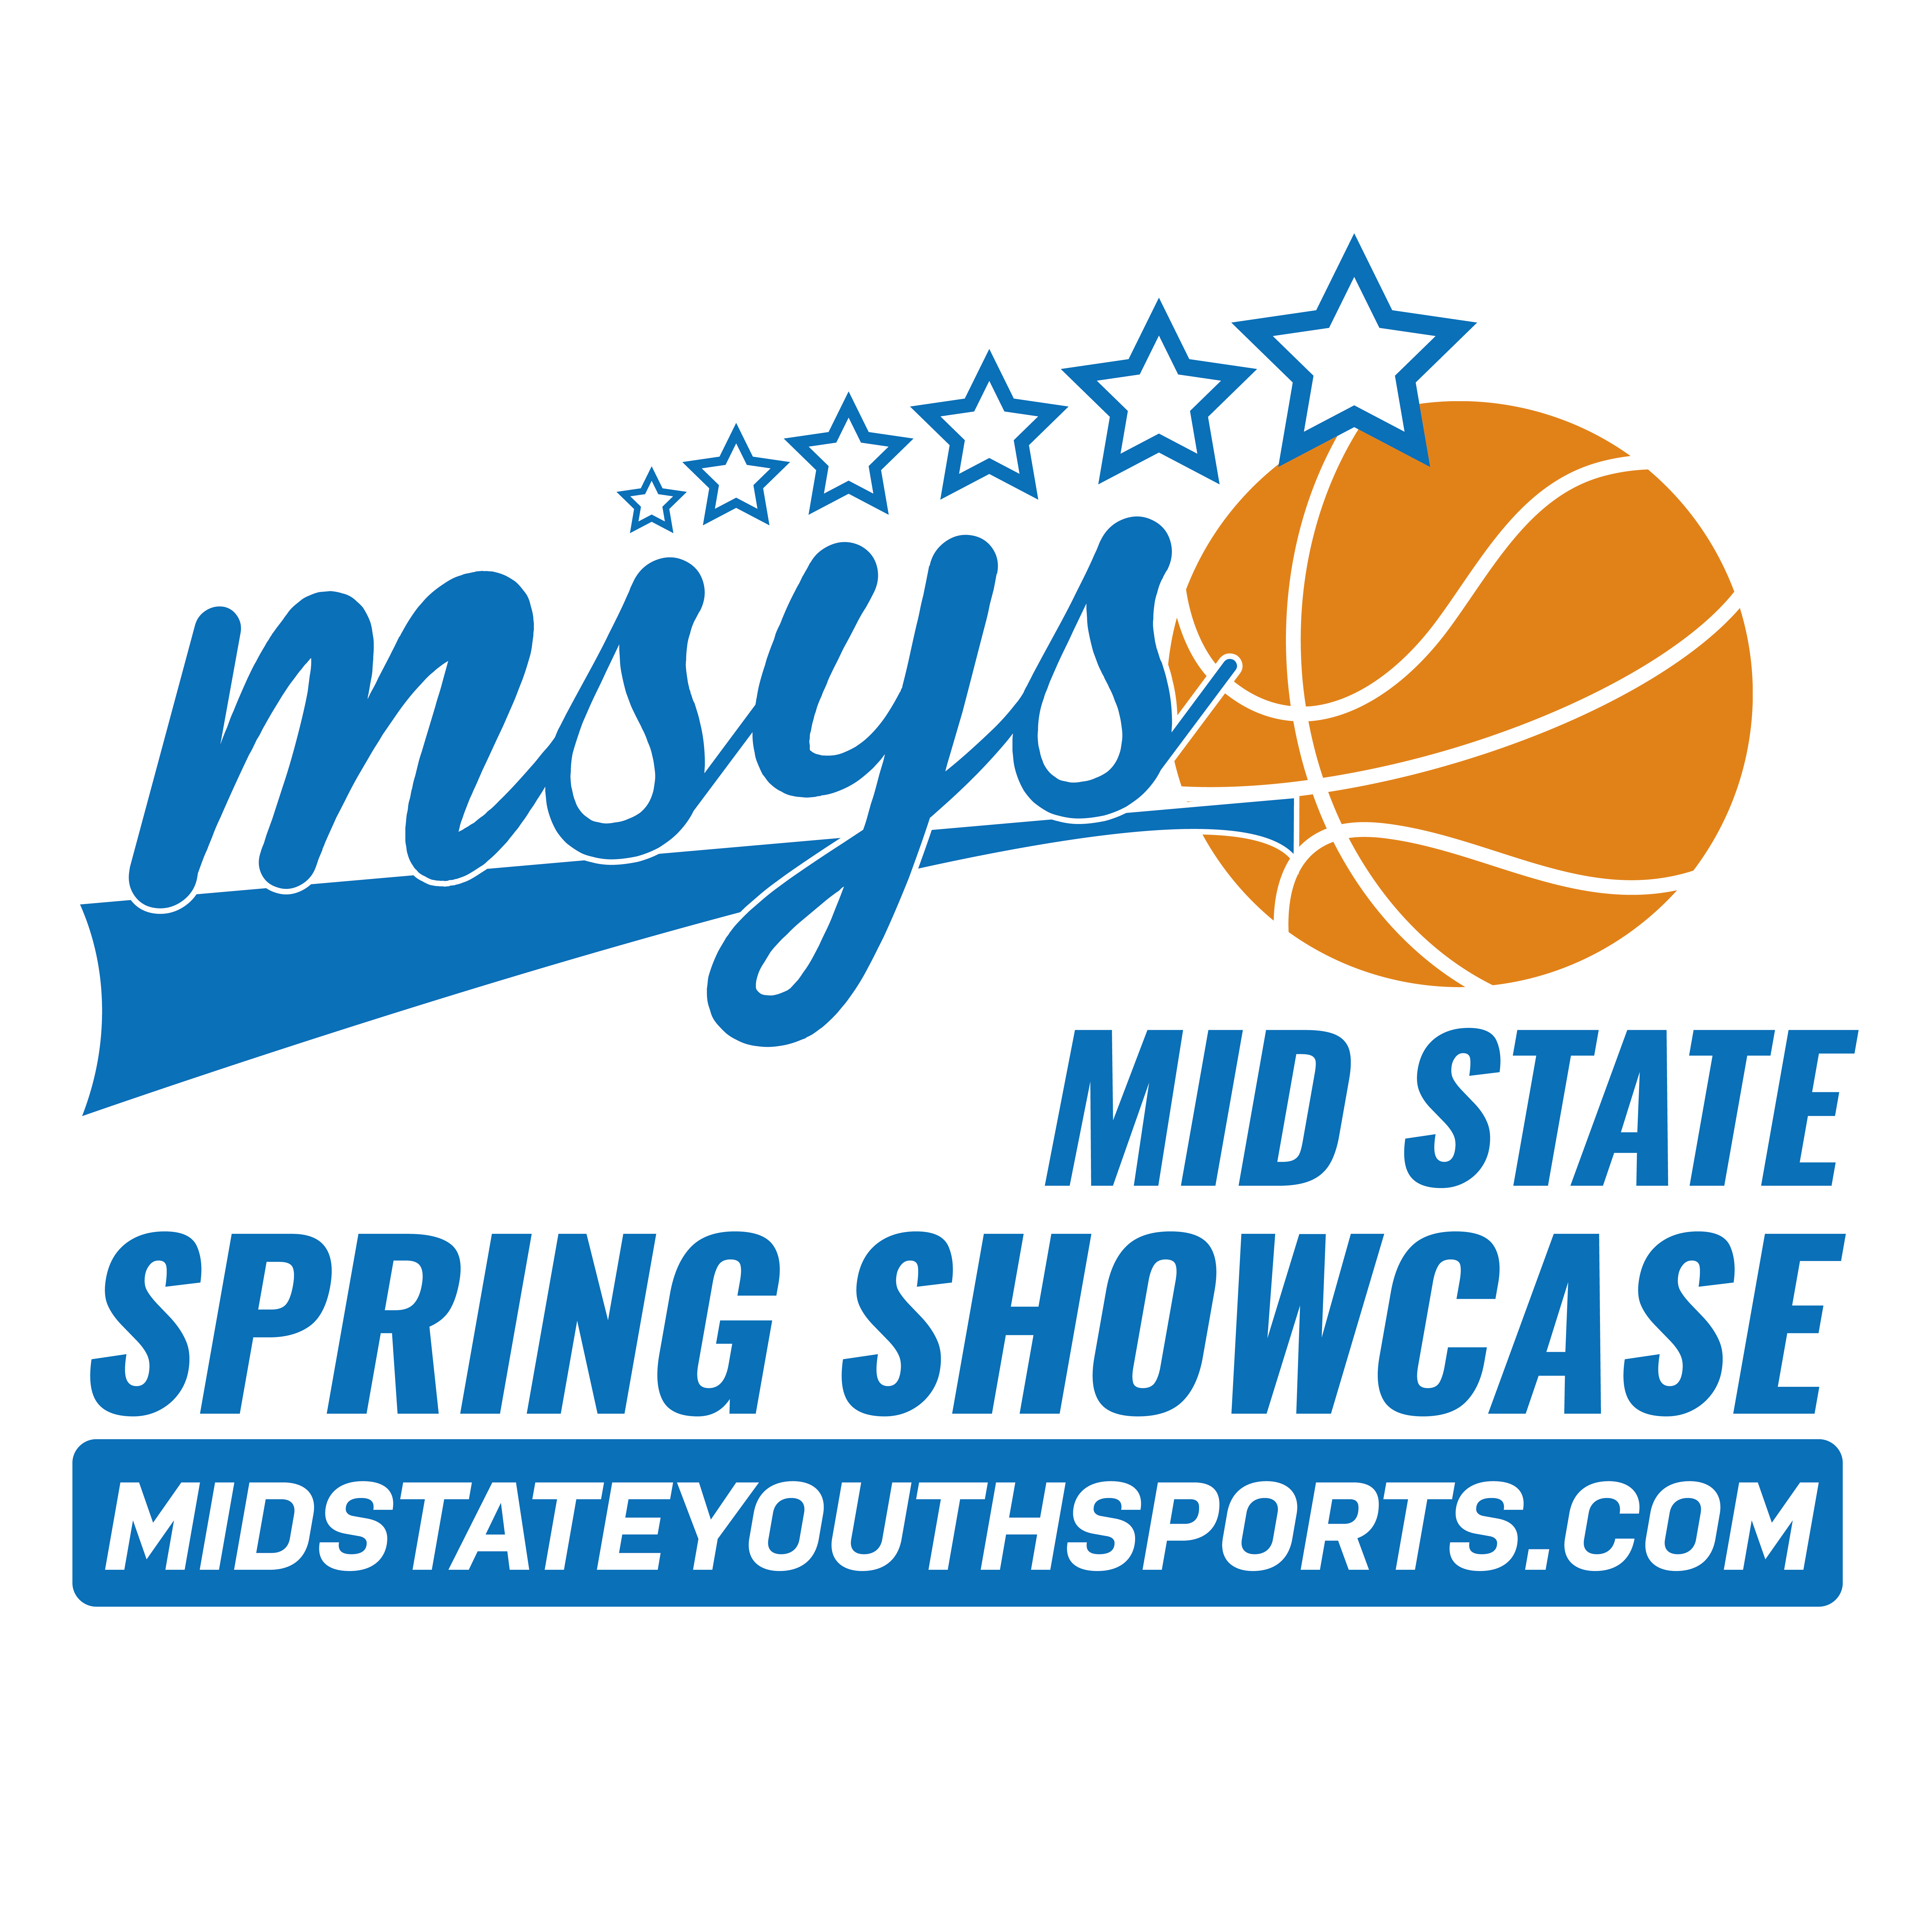 MSYS 6th Annual Mid State Spring Showcase